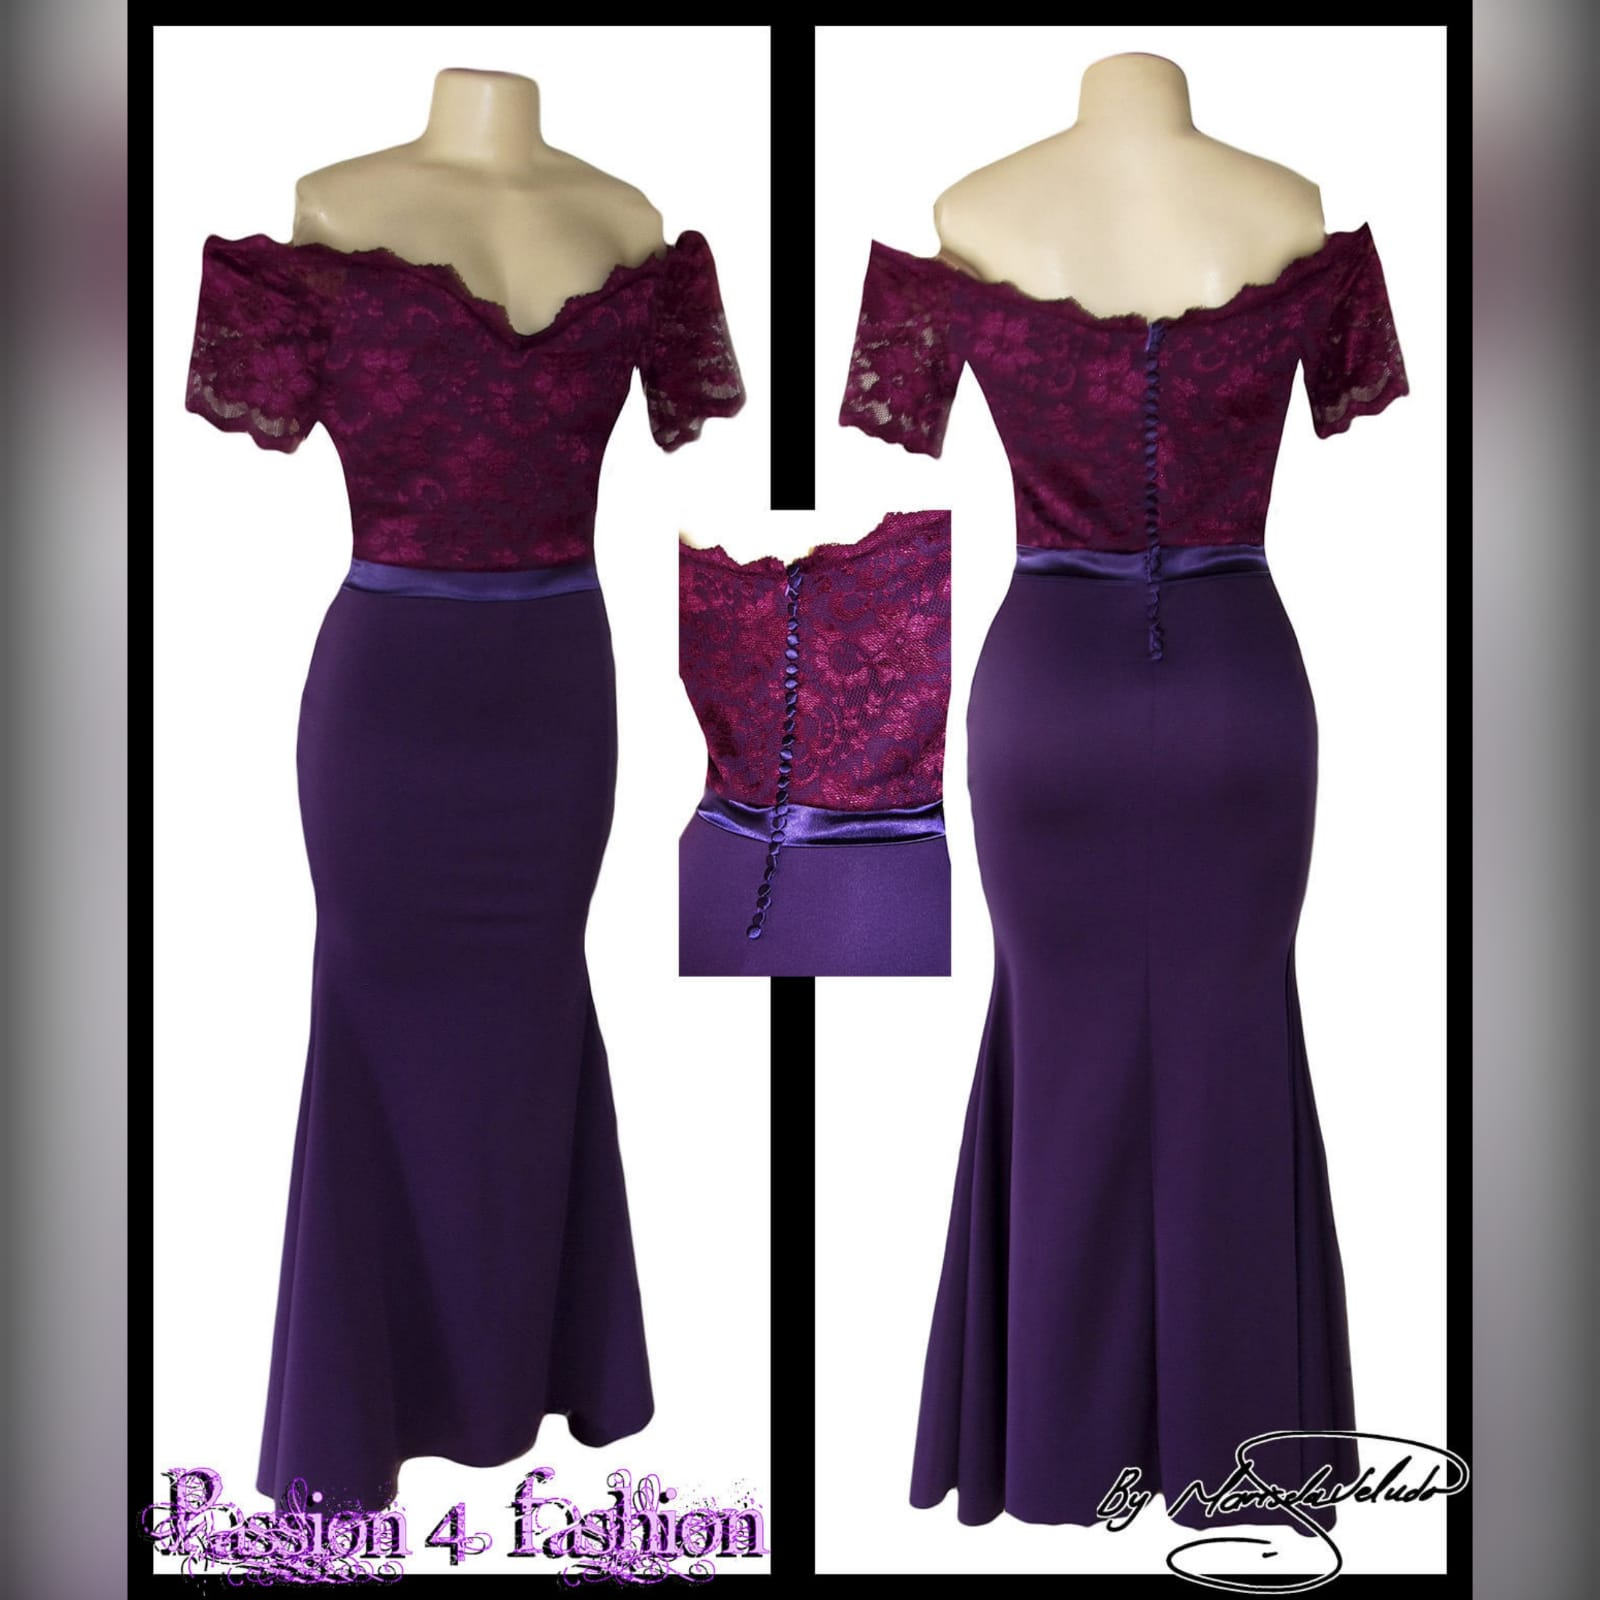 Off shoulder 2 tone purple soft mermaid bridesmaid dress 4 off shoulder 2 tone purple soft mermaid bridesmaid dress with a lace bodice. Detailed with a satin belt and buttons.